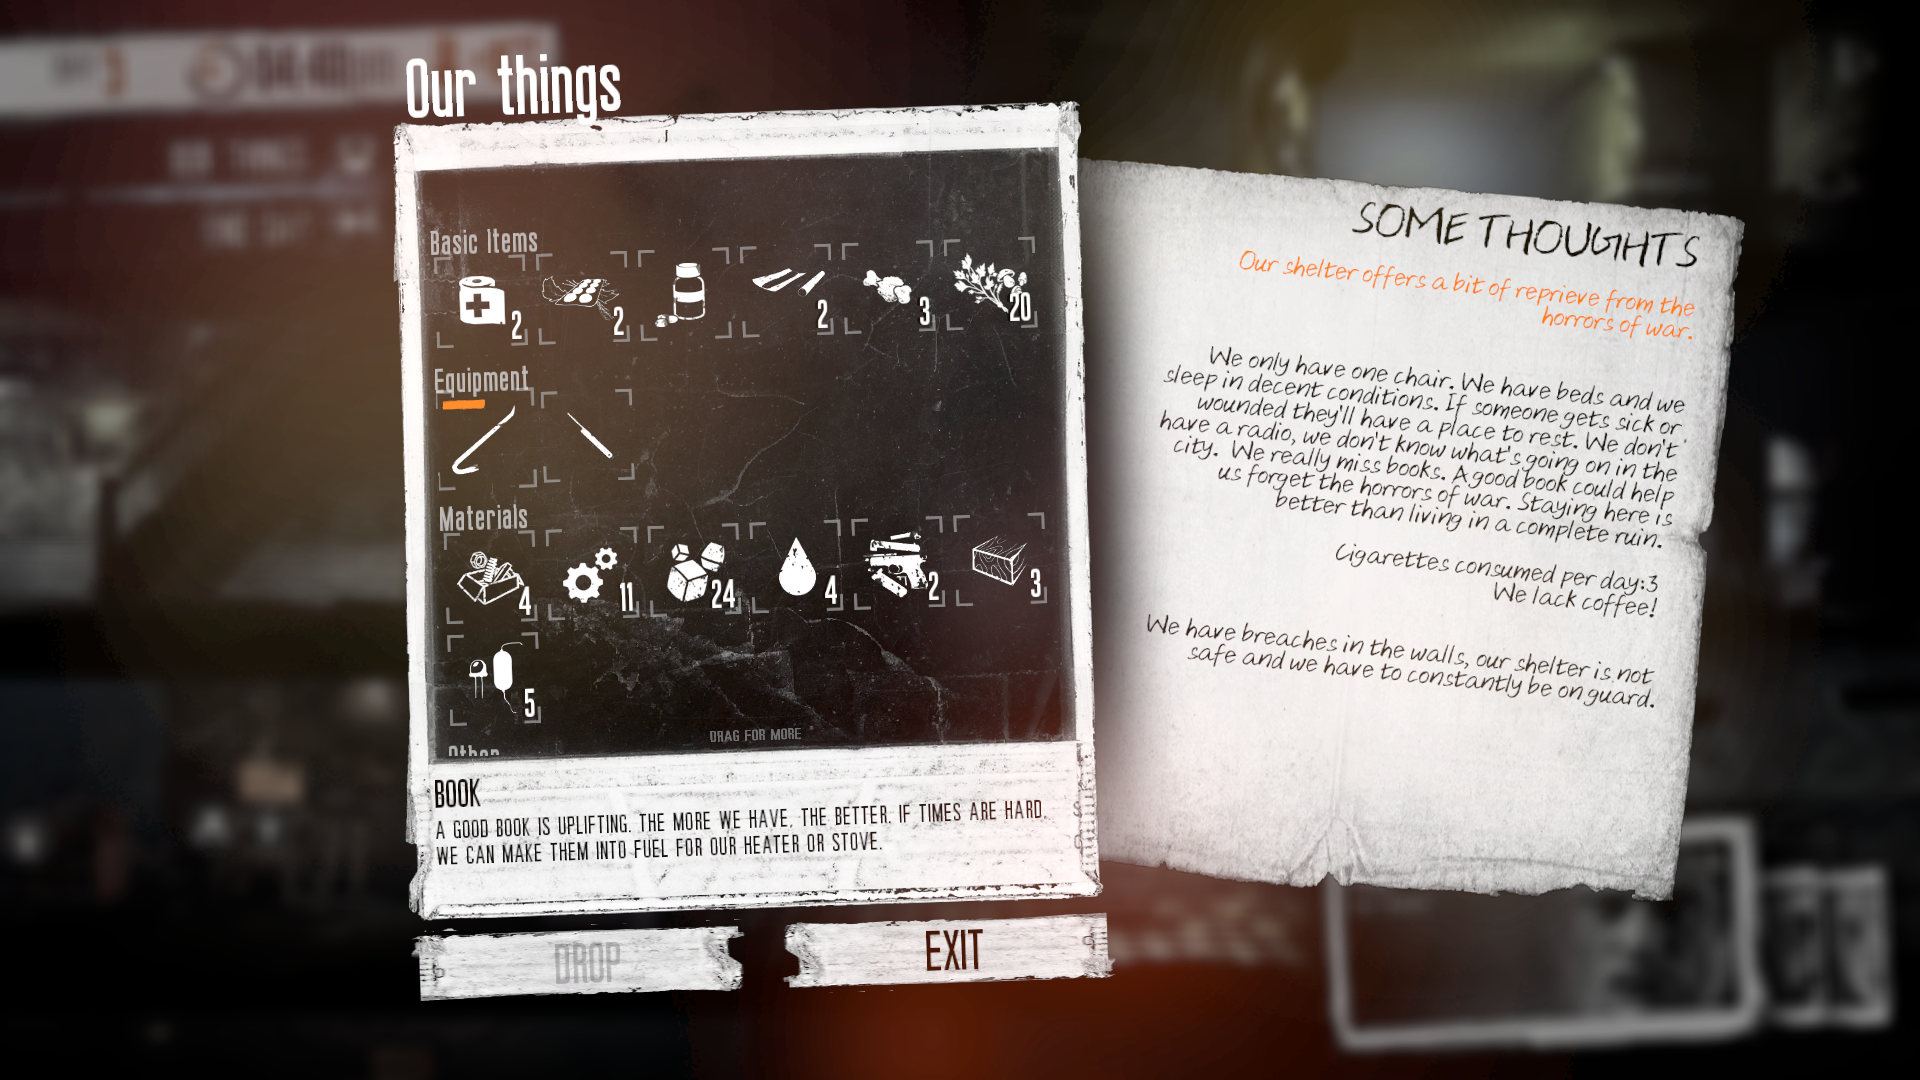 http://www.ninja-blues.com/wp-content/uploads/2015/05/ThisWarOfMine-OverviewOurThings.png